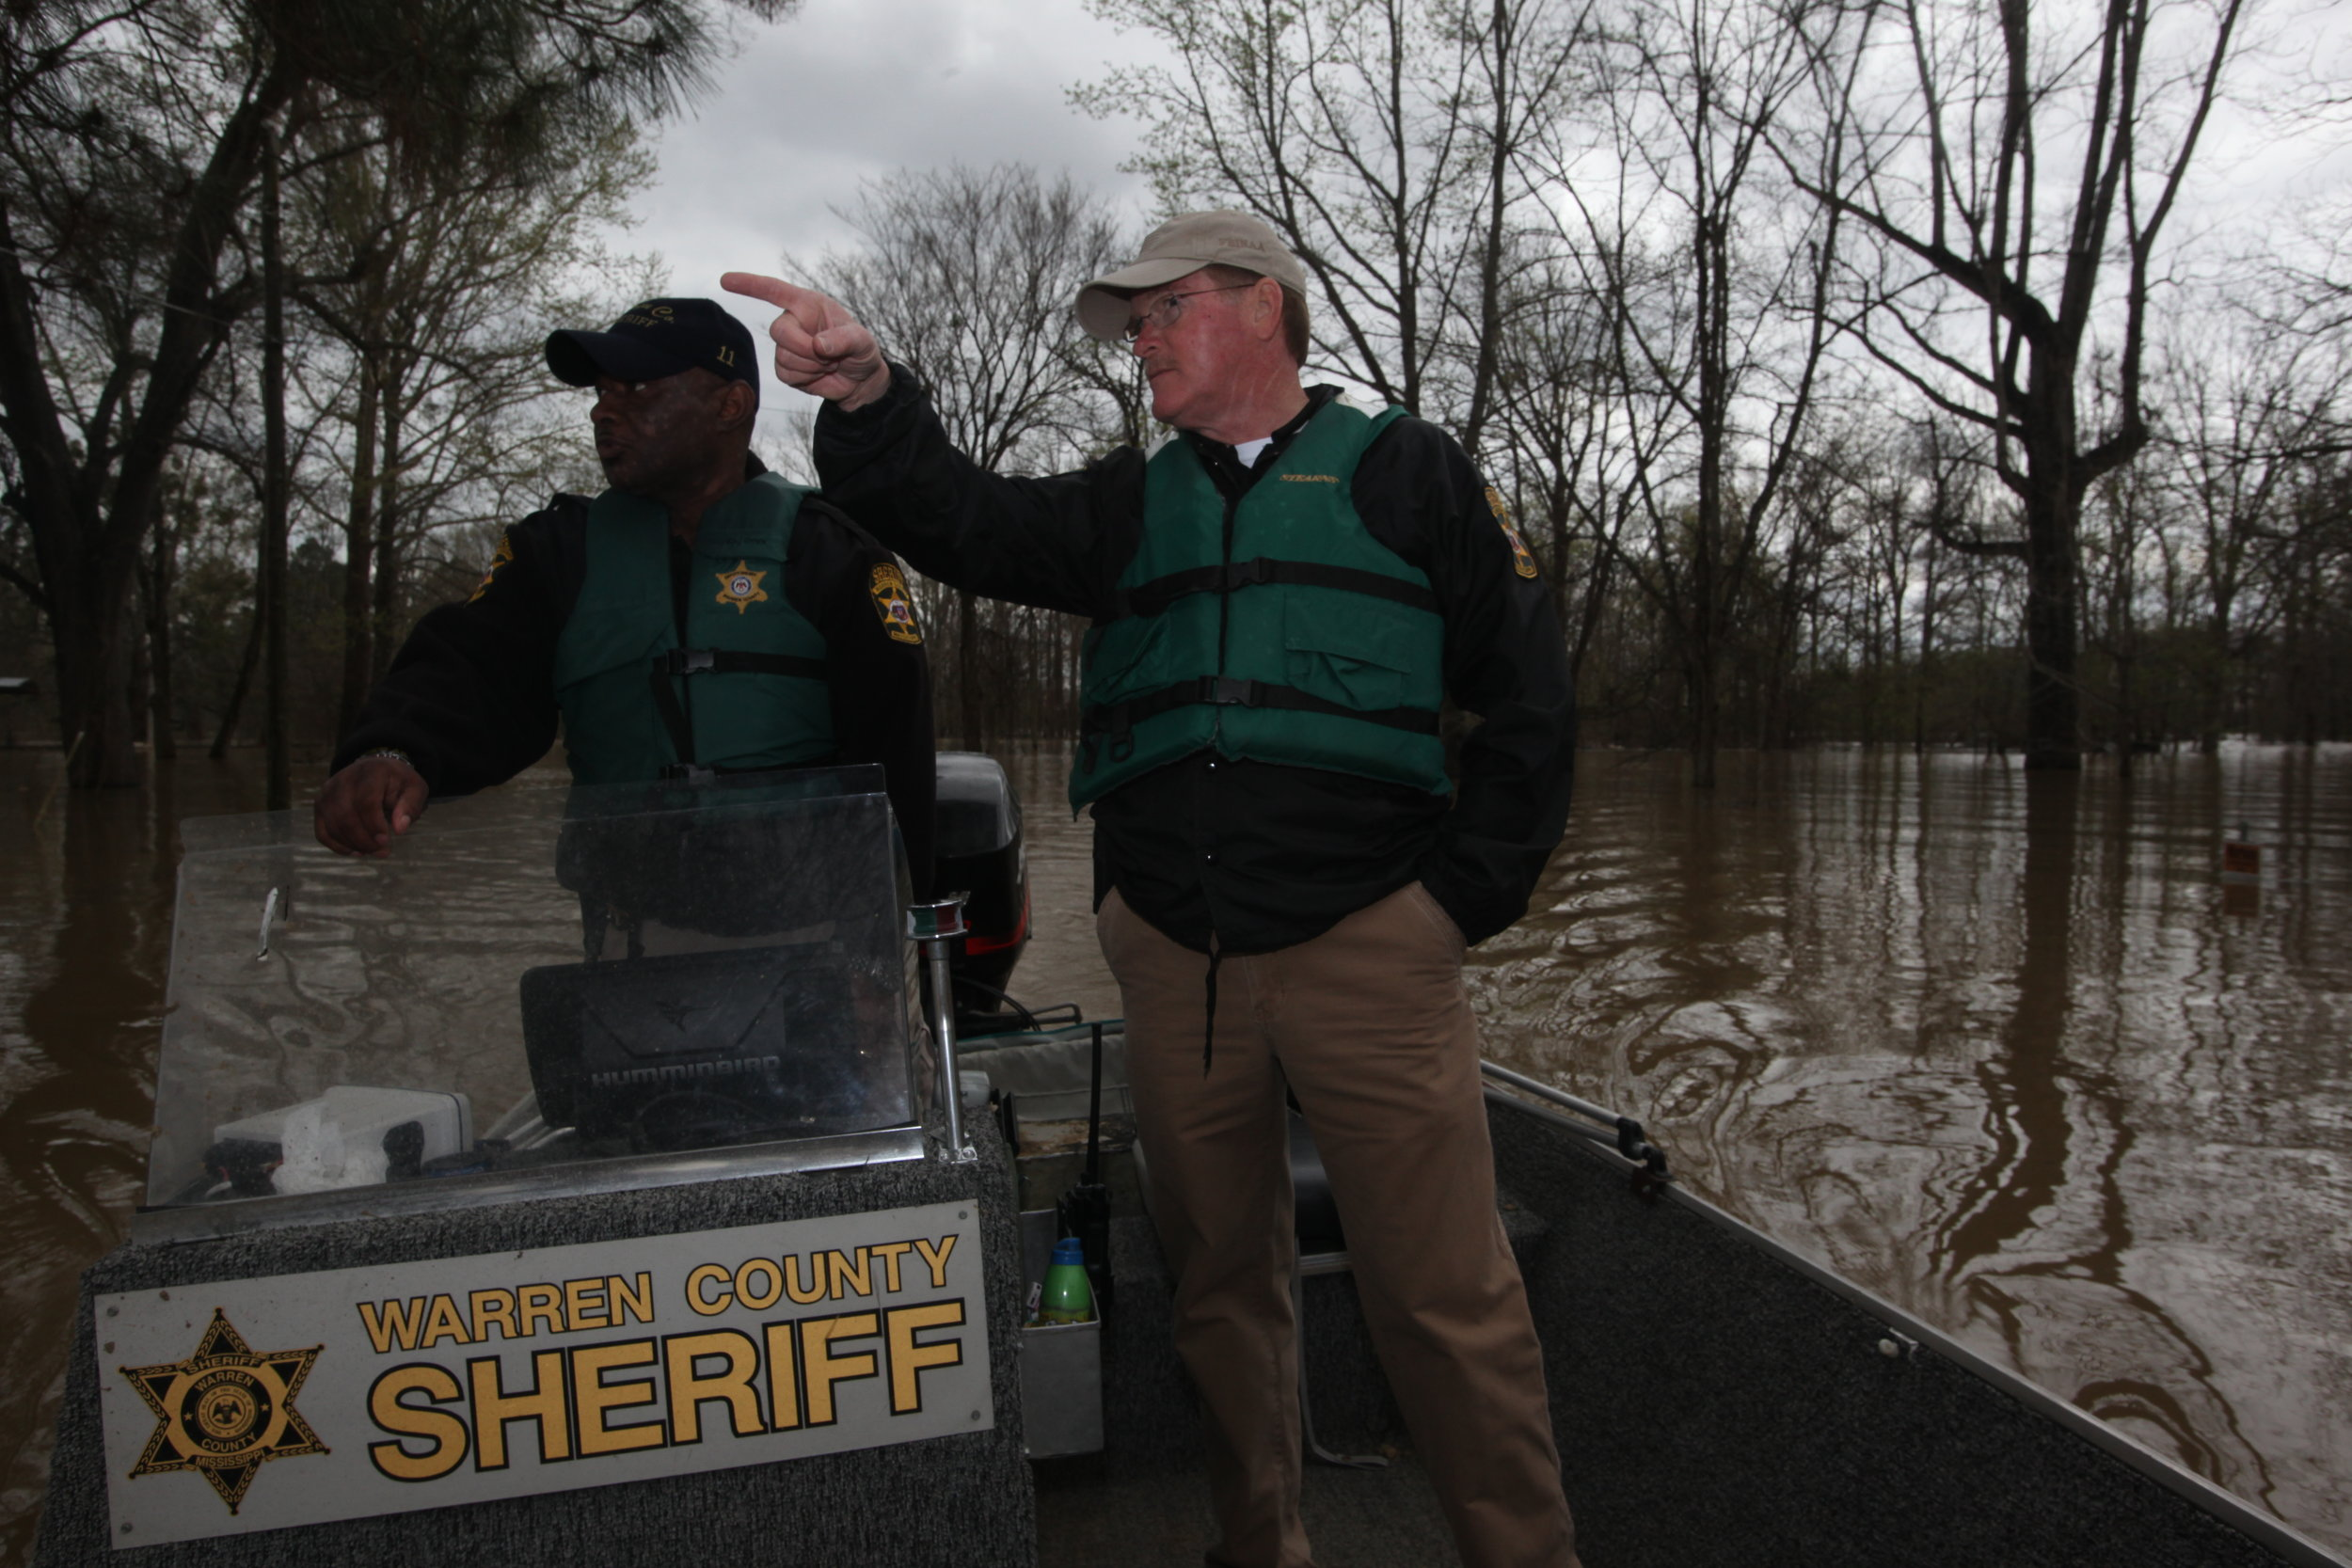 Warren County Sheriff's Detective Sam Winchester steers a boat as Sheriff Martin Pace looks on while patrolling the Chickasaw Subdivision by boat Tuesday. (Courtland Wells/The Vicksburg Post)